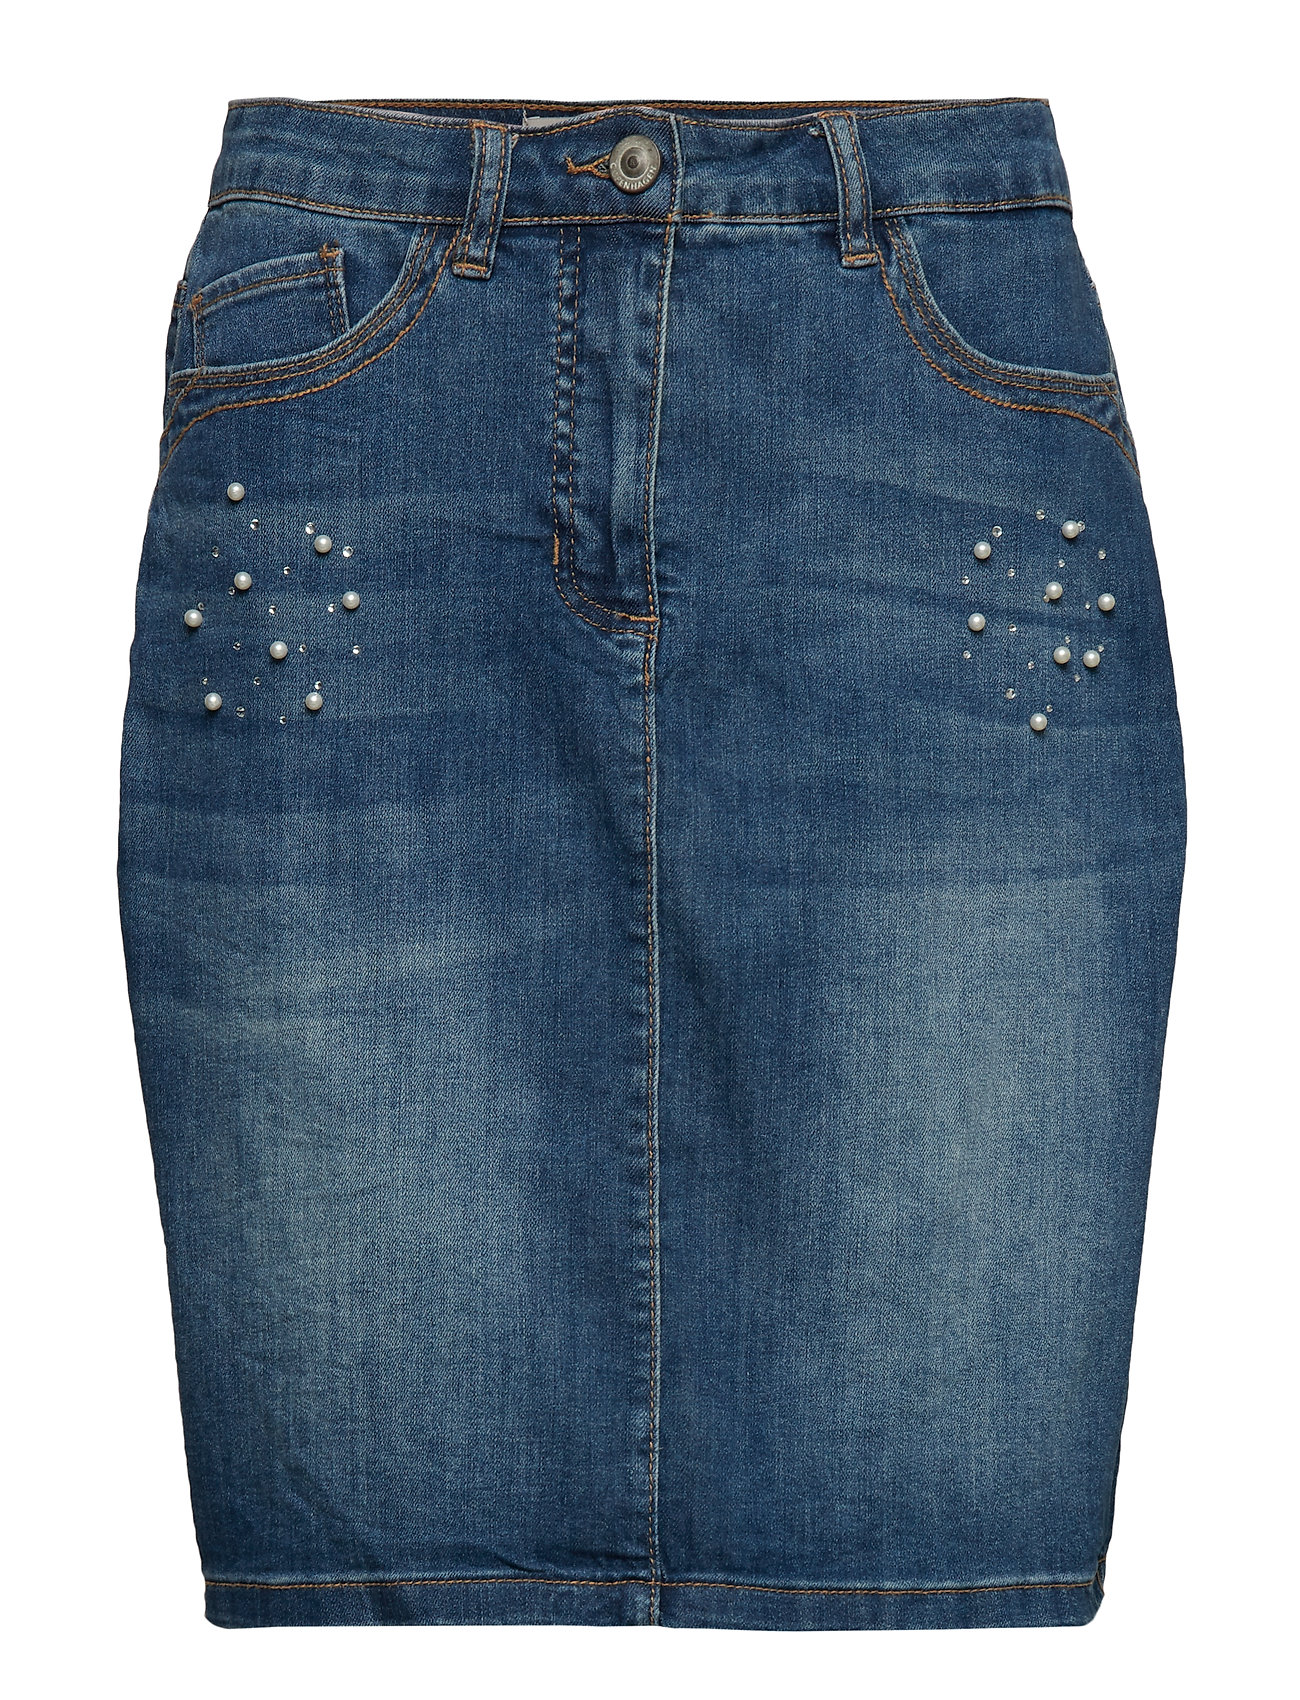 Brandtex Skirt-denim - WASHED DENIM BLUE